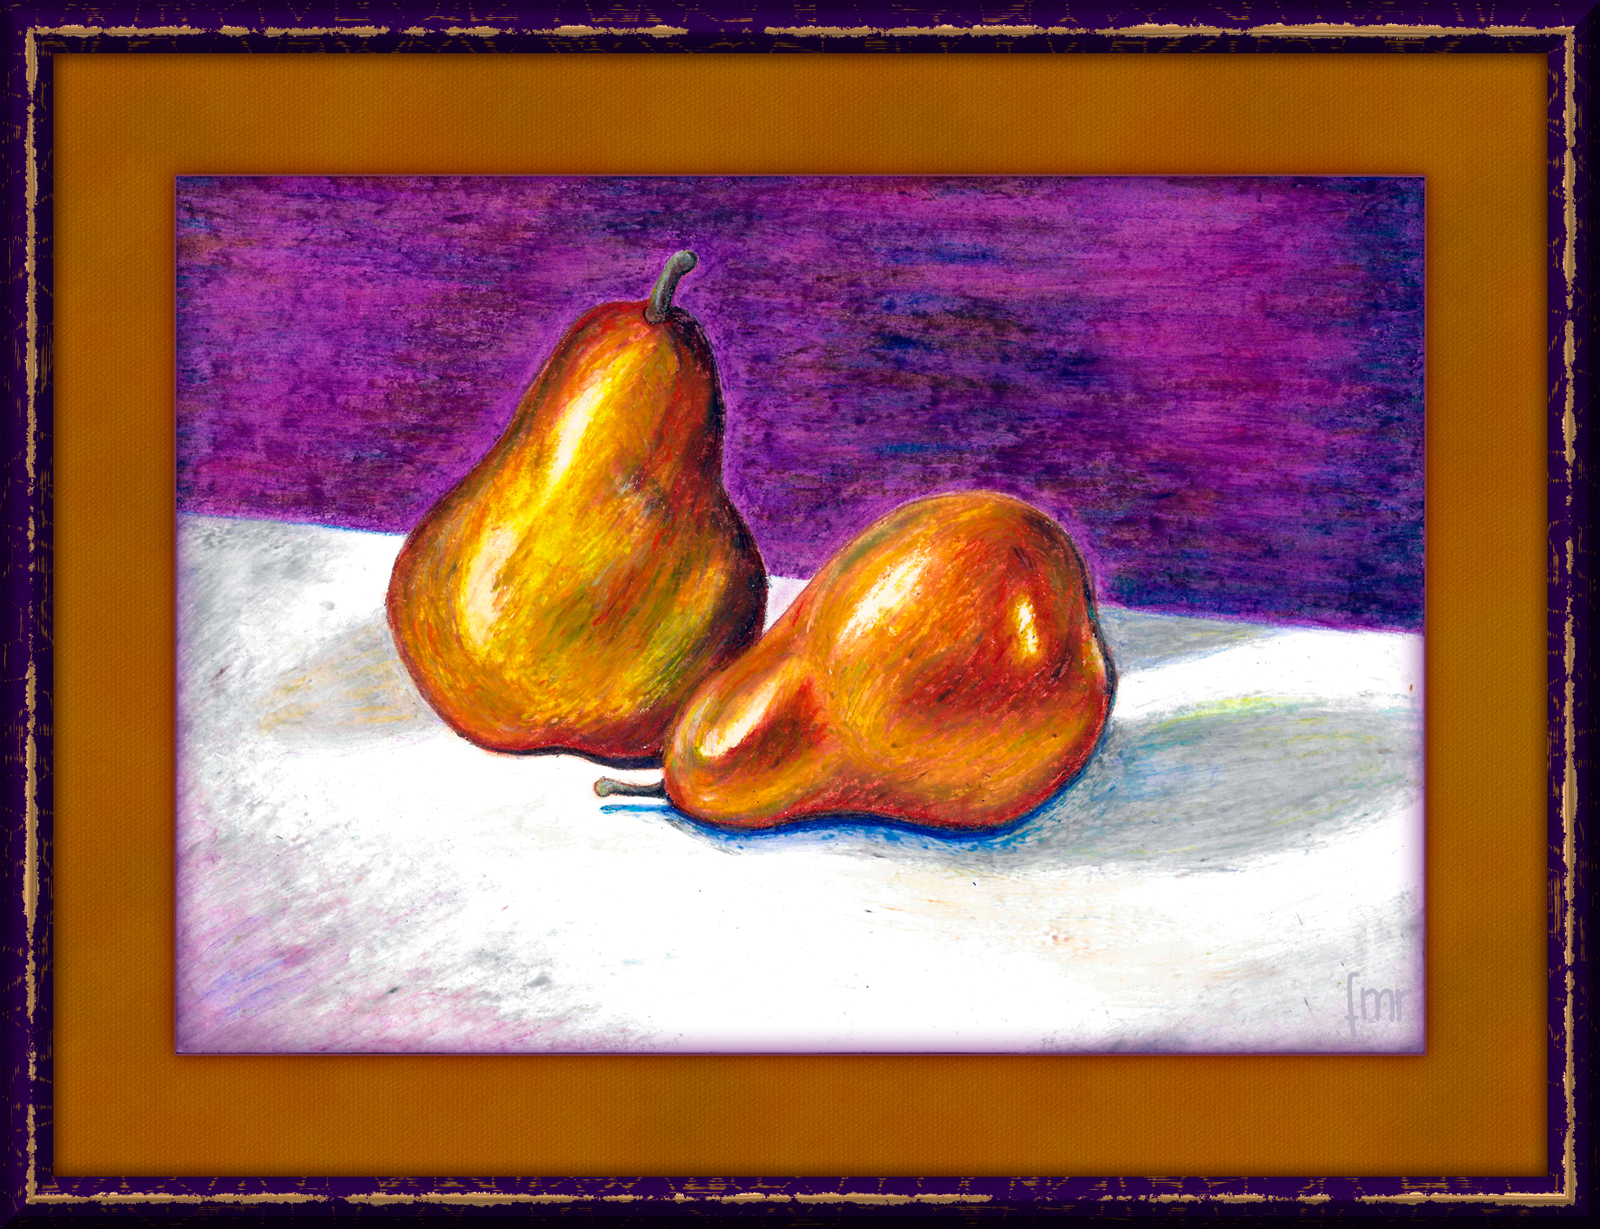 a Pair of Pears by Saltwater